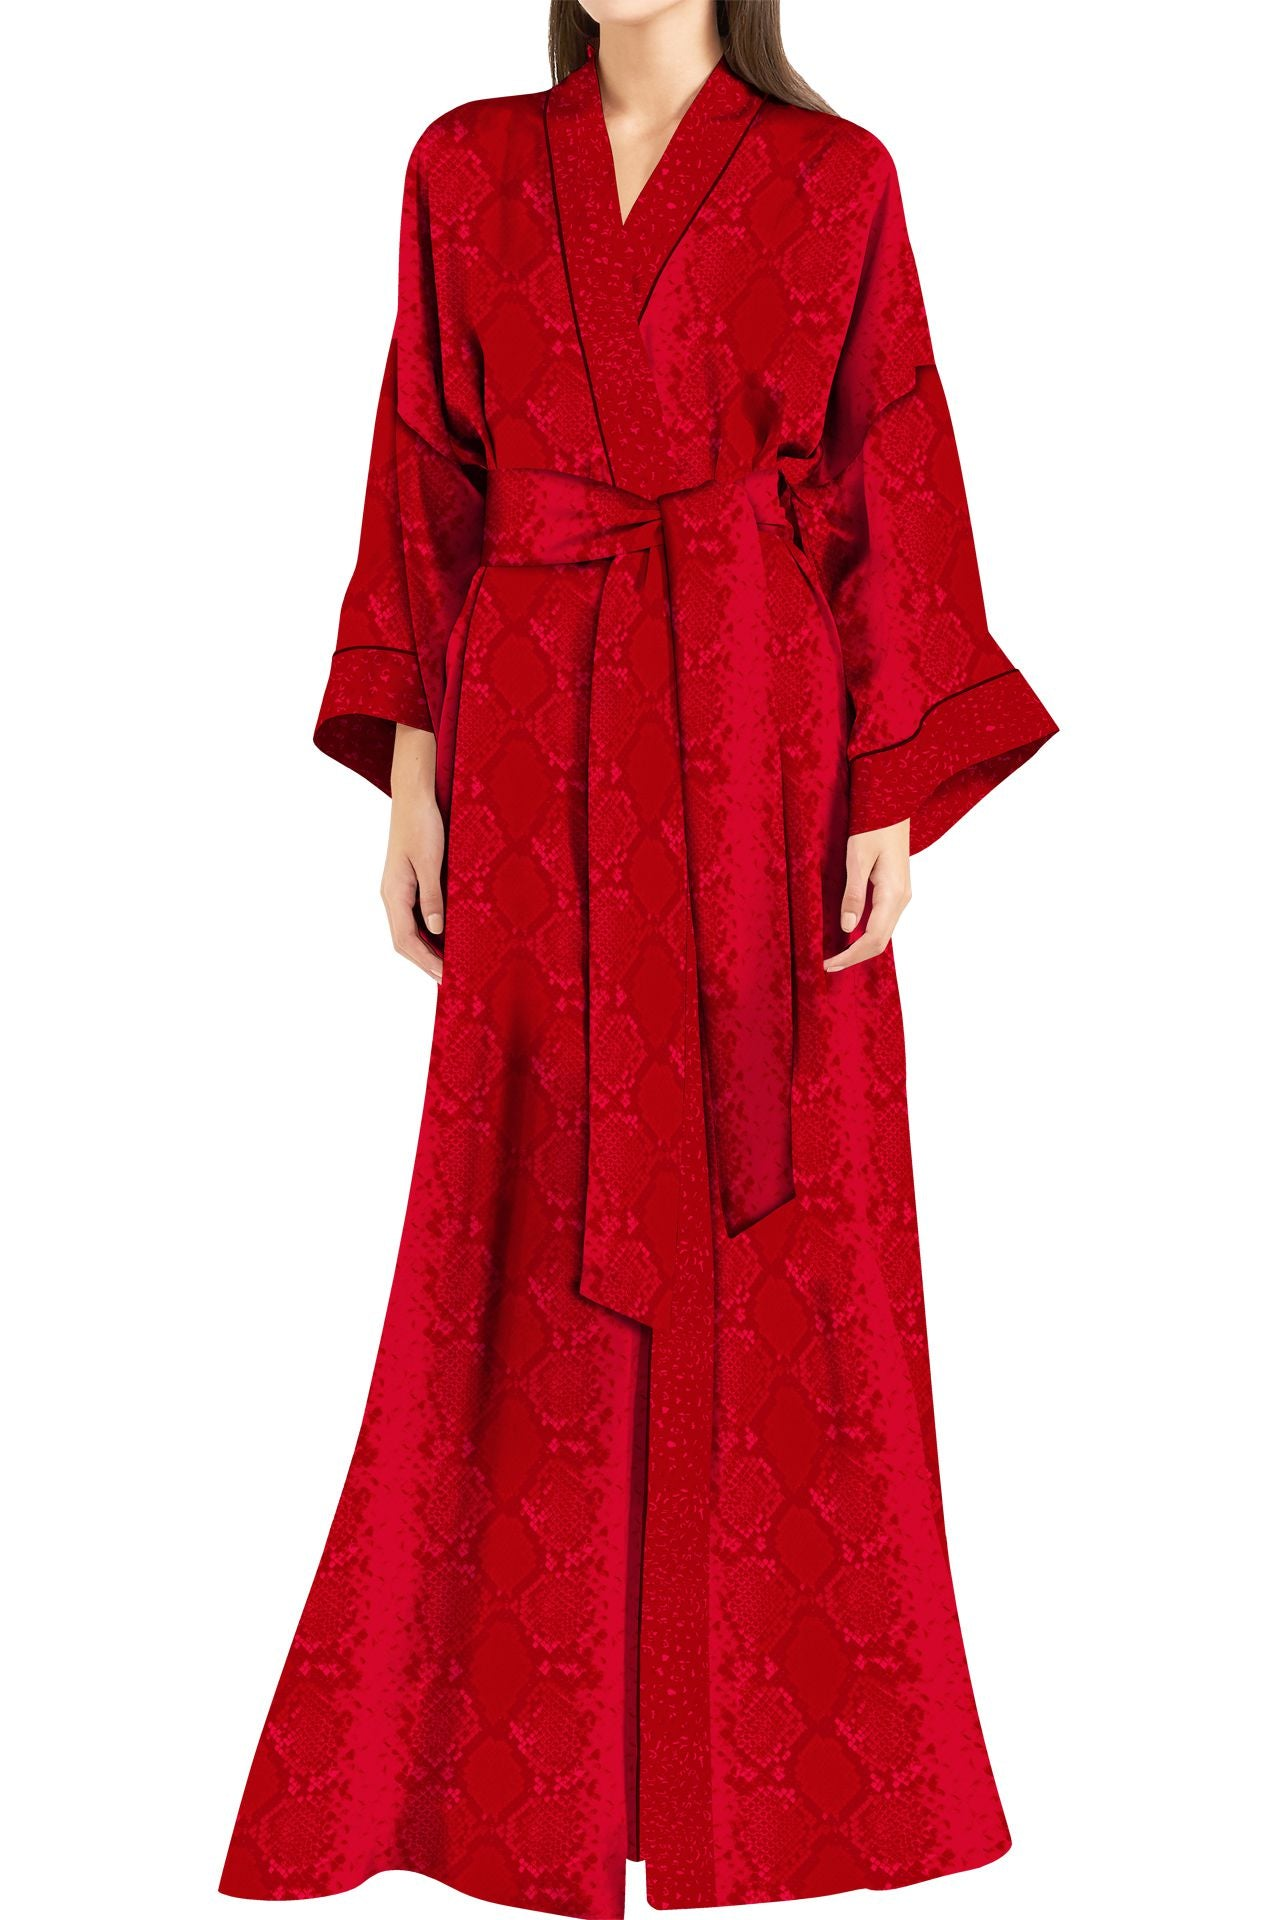 Made with Cupro Long Kimono Robe Dress in Blood Stone